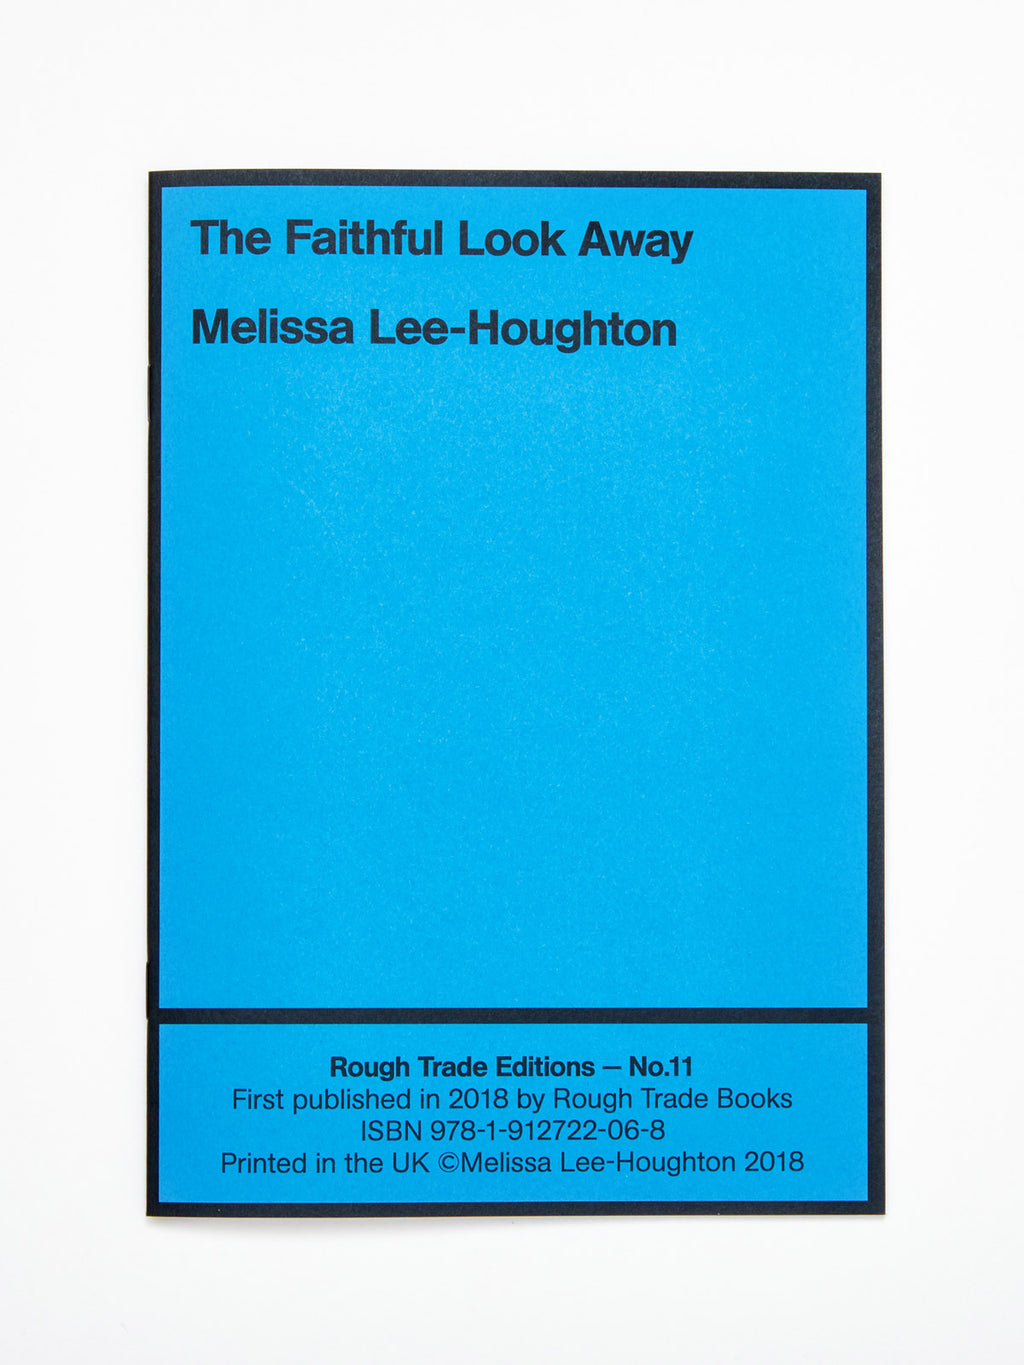 Melissa Lee-Houghton - The Faithful Look Away